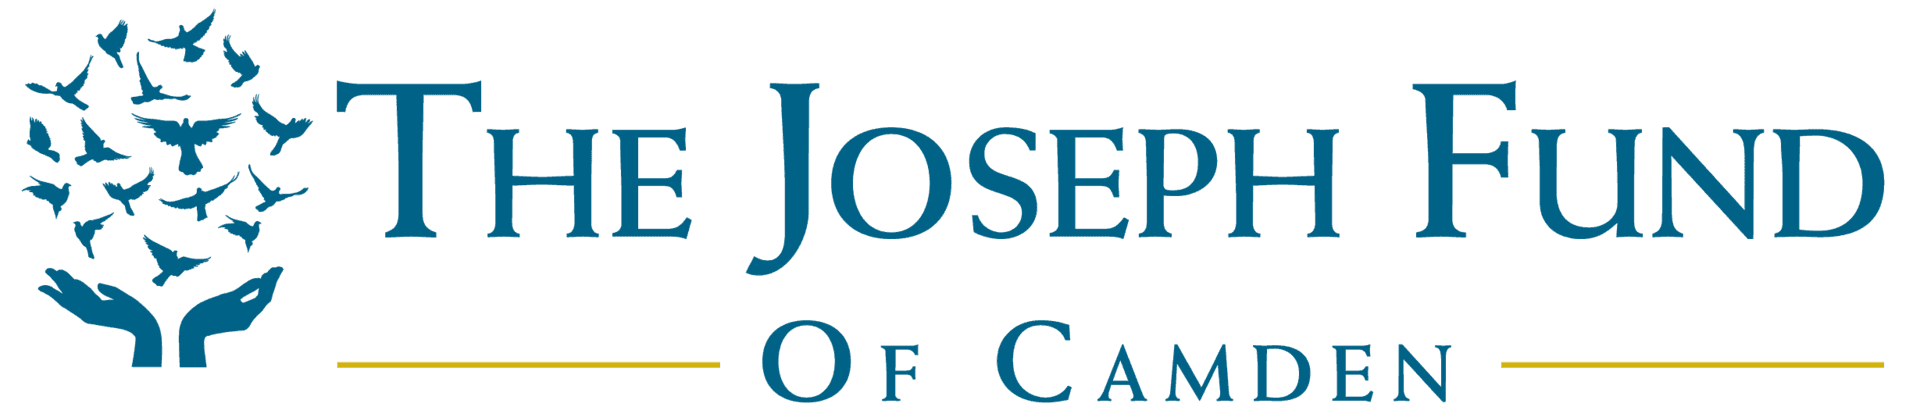 Joseph Fund of Camden logo